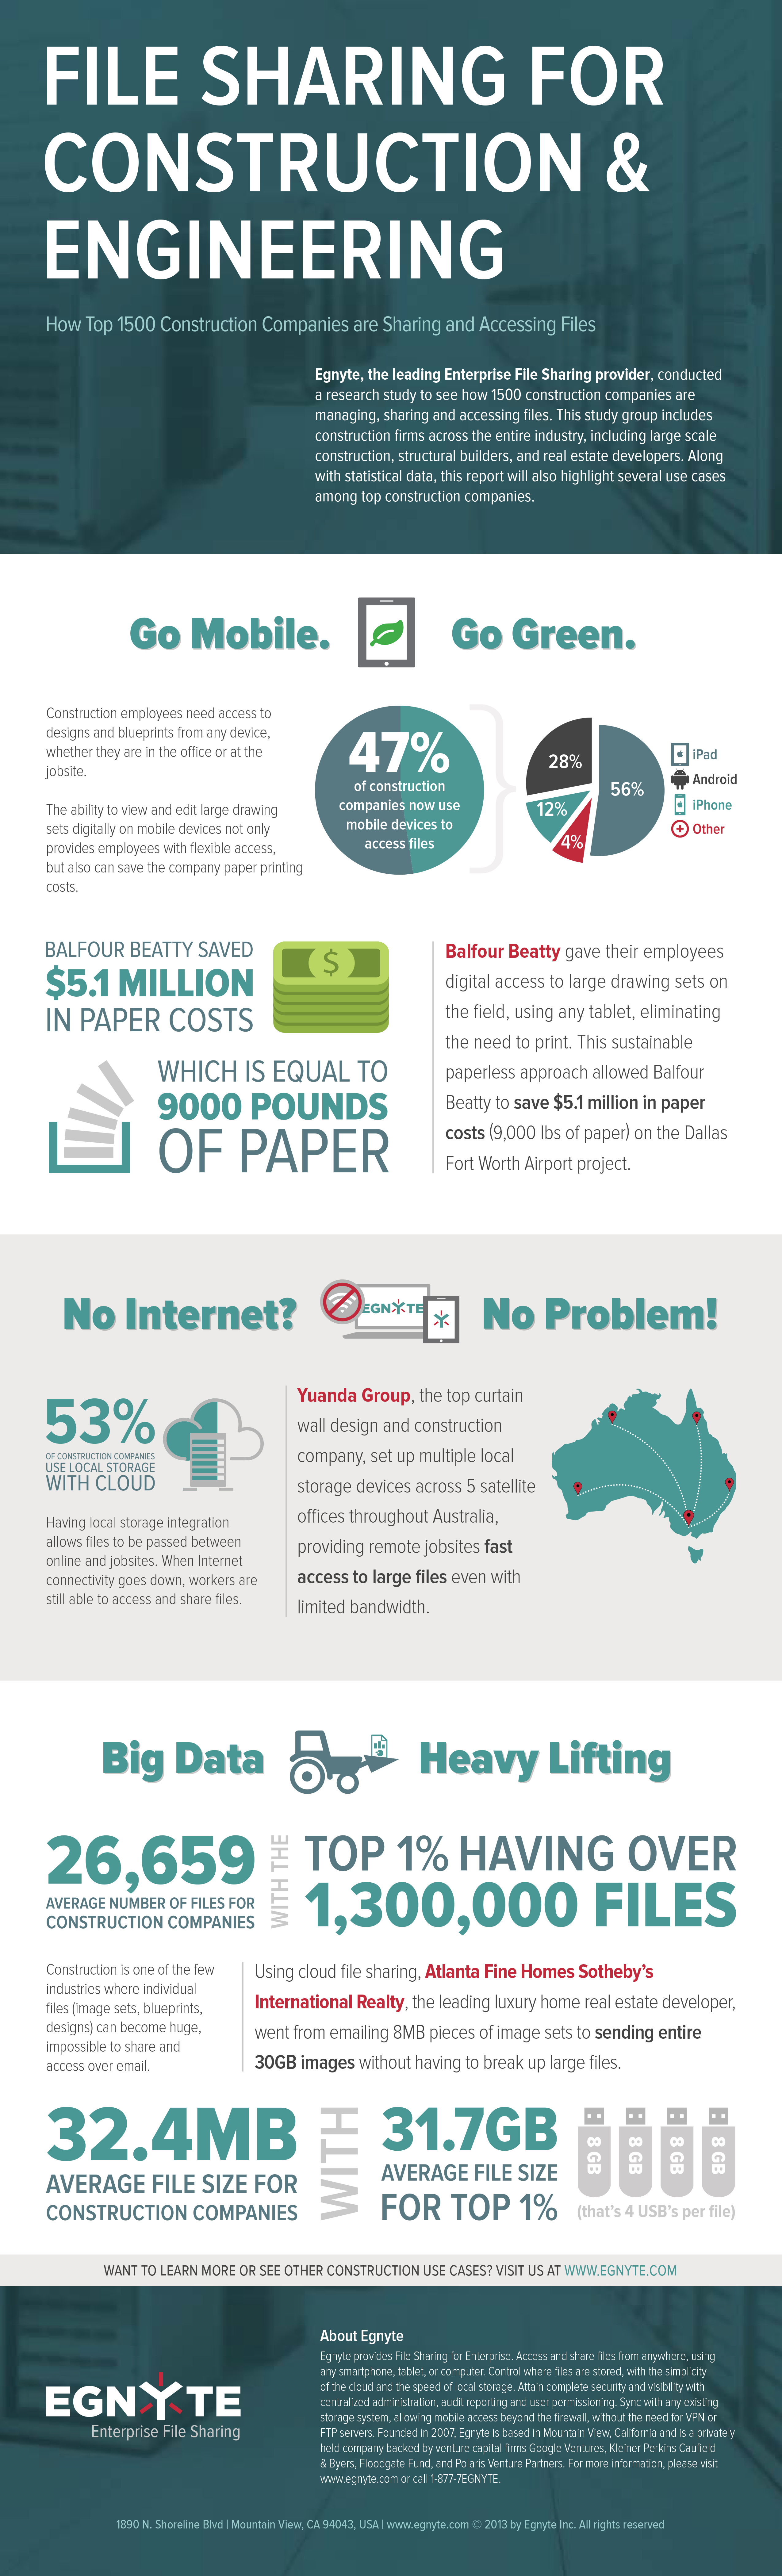 Vertical Corner: Deep Dive into File Sharing for Construction [Infographic] - Egnyte Blog